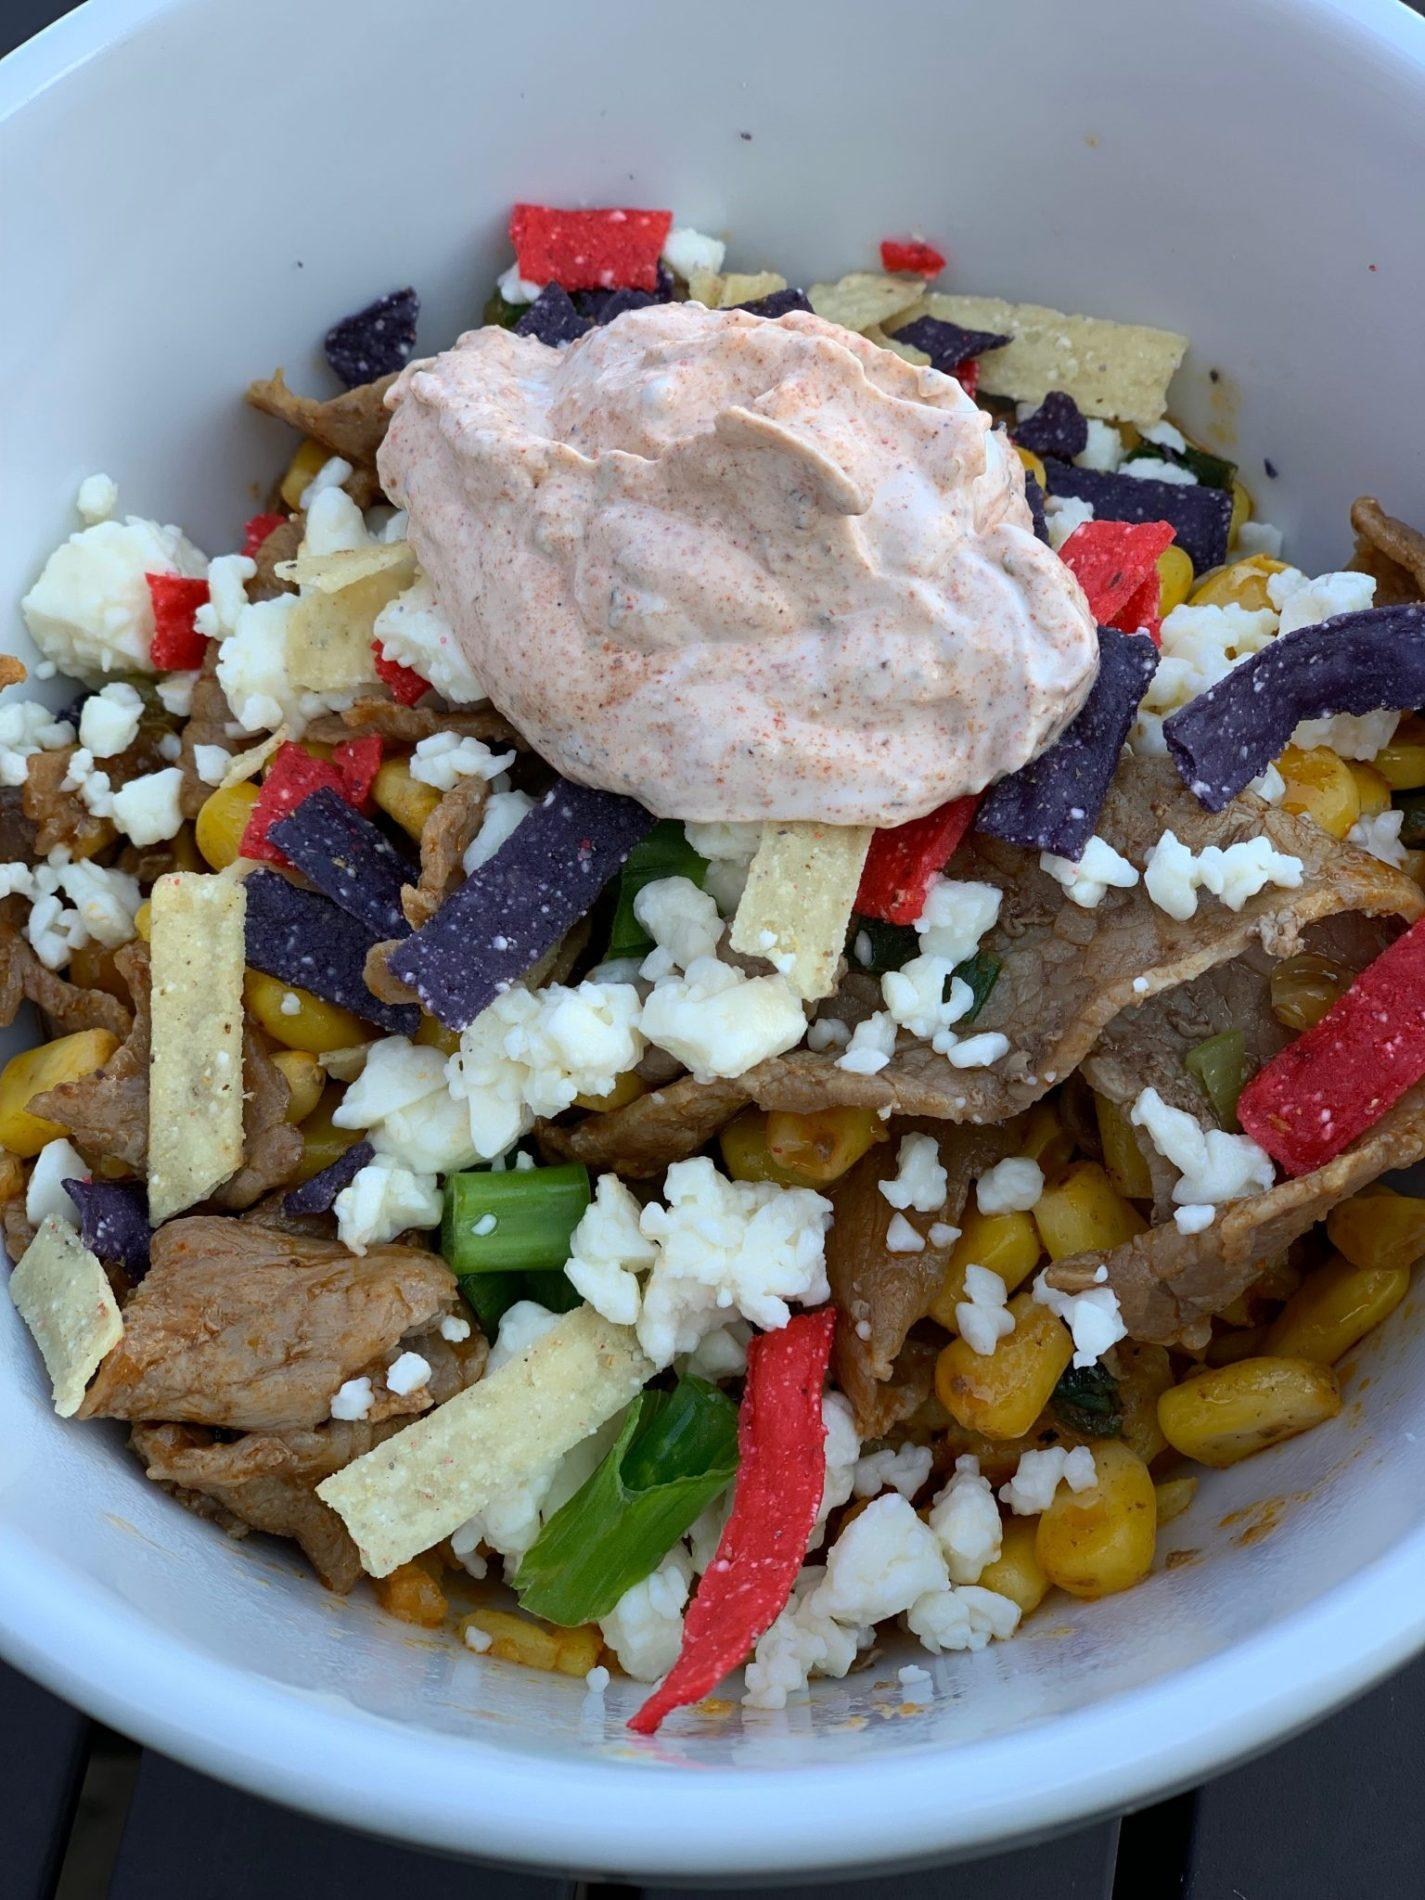 Kroger Home Chef Meal Kit Review – Steak Burrito Bowl with Corn and Crispy Tortilla Strips